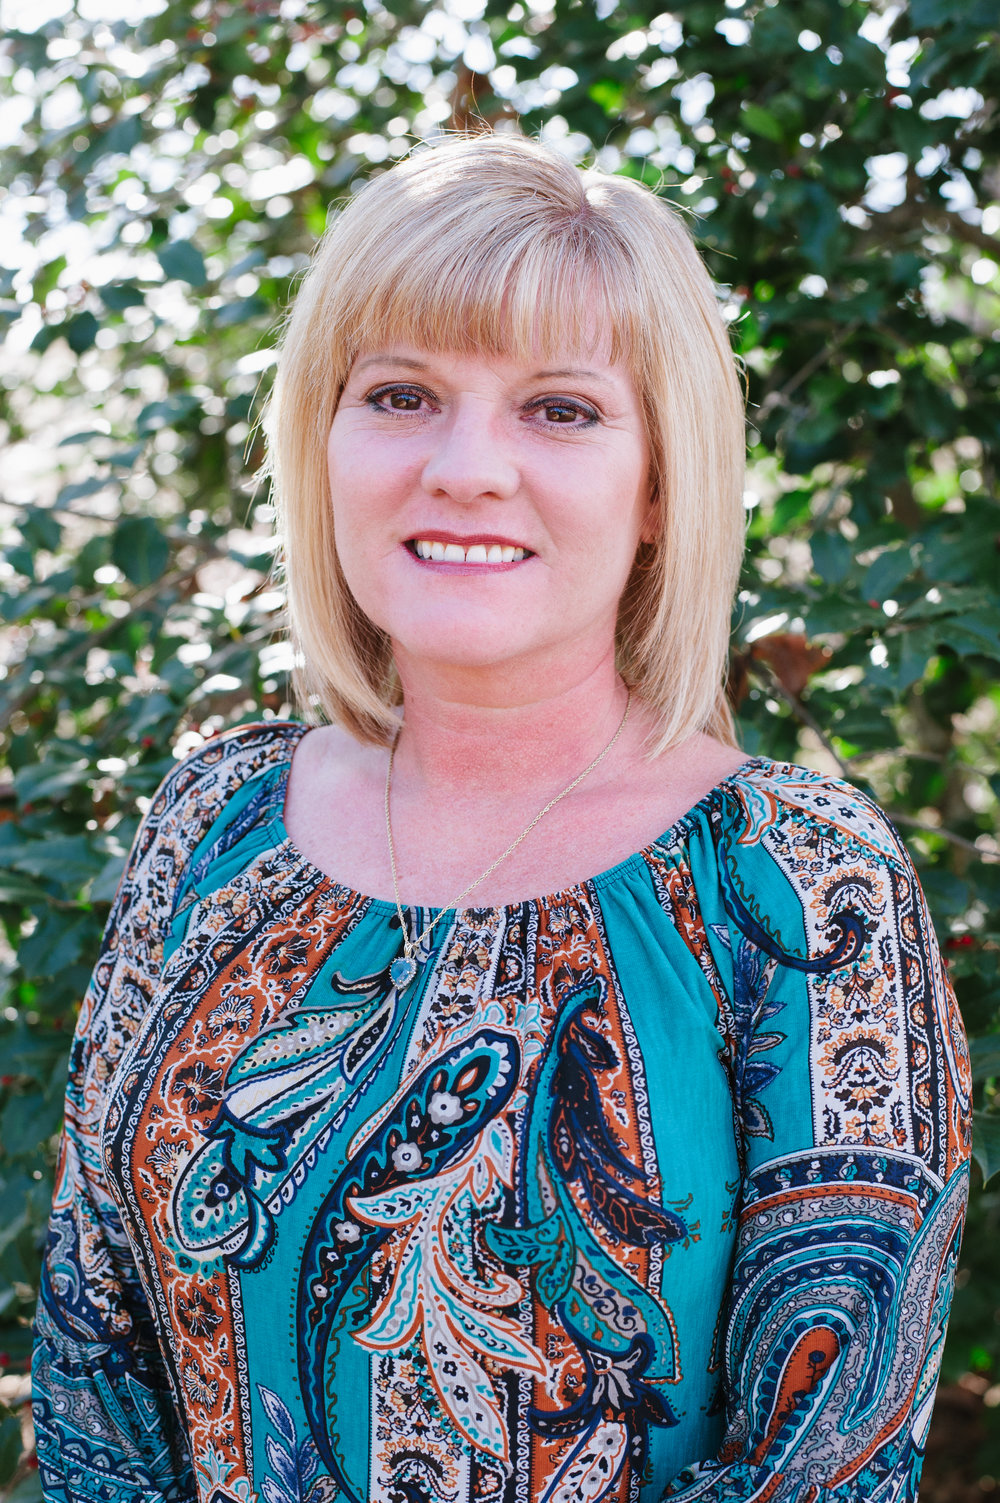 AMY MCABEE Office Manager Organized, sharp and on task, Amy manages the Rosewood office, taking care of book-keeping and communications. She keeps things running smoothly between Rosewood, our suppliers and subcontractors.